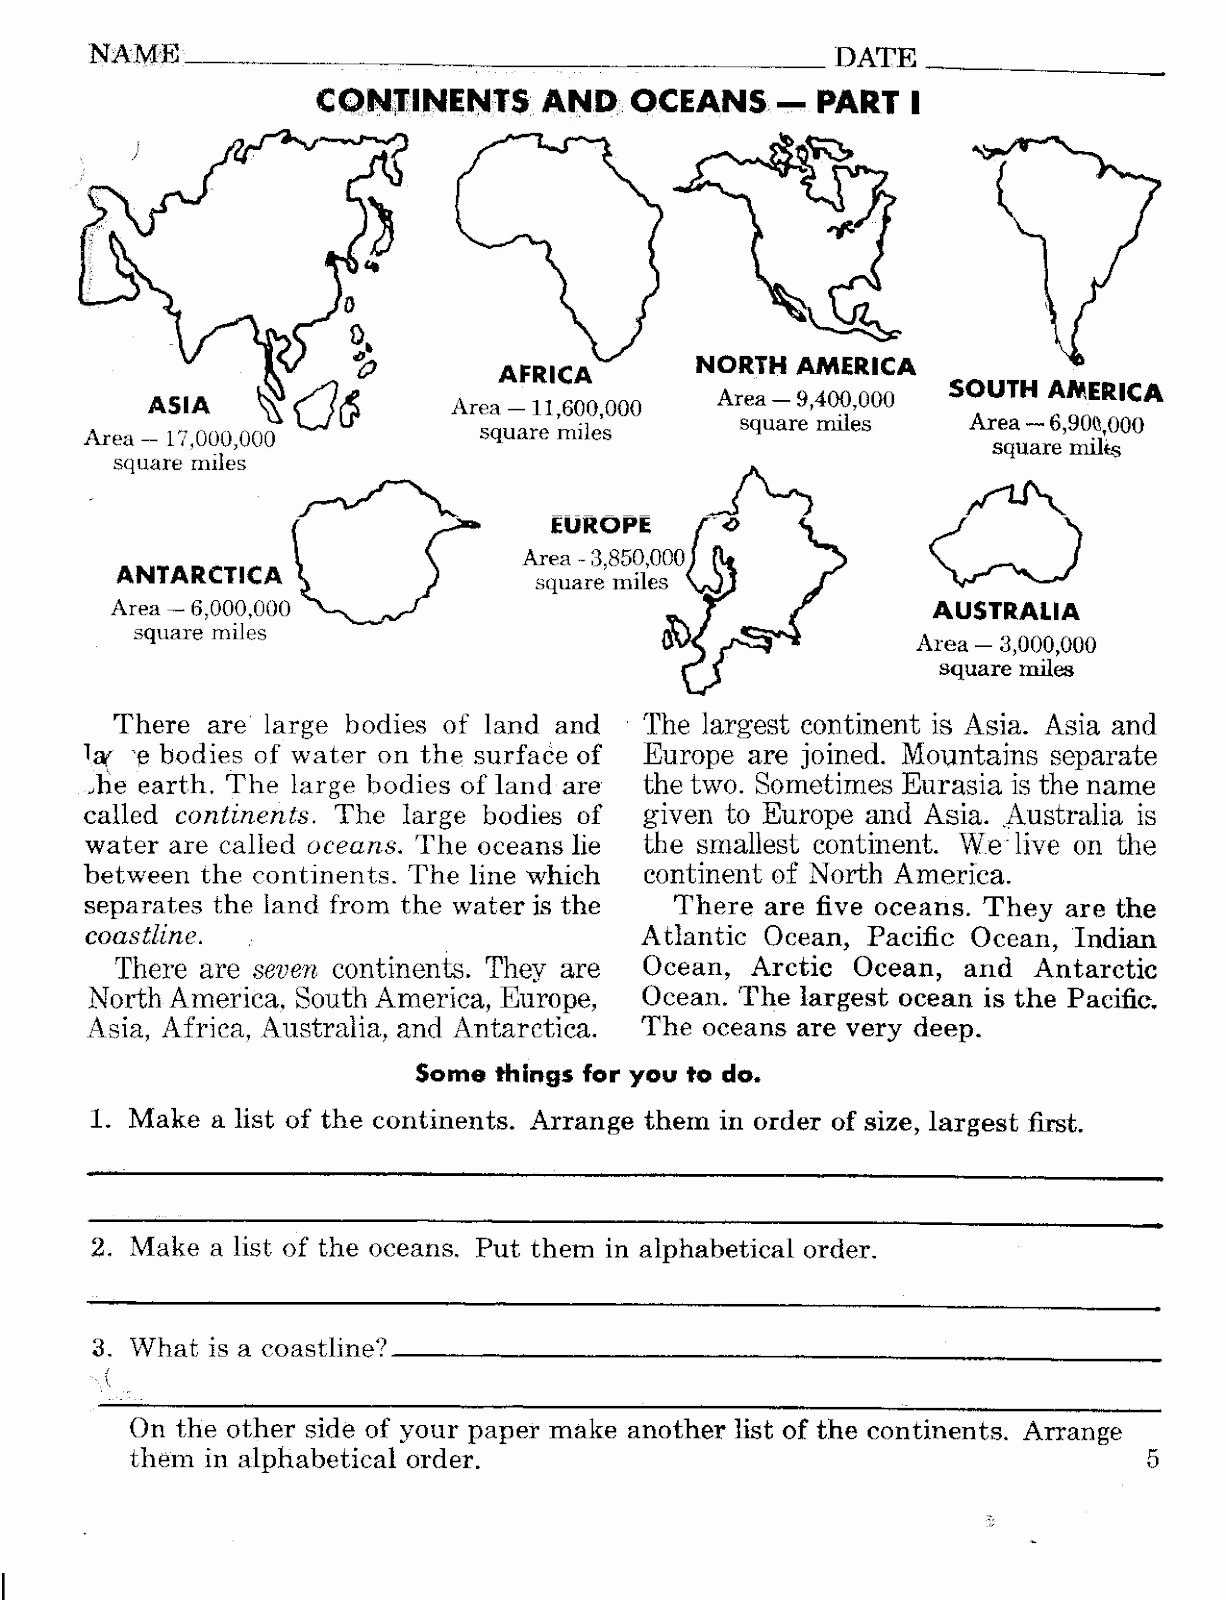 Continents and Oceans Worksheet Unique Continents and Oceans Worksheets